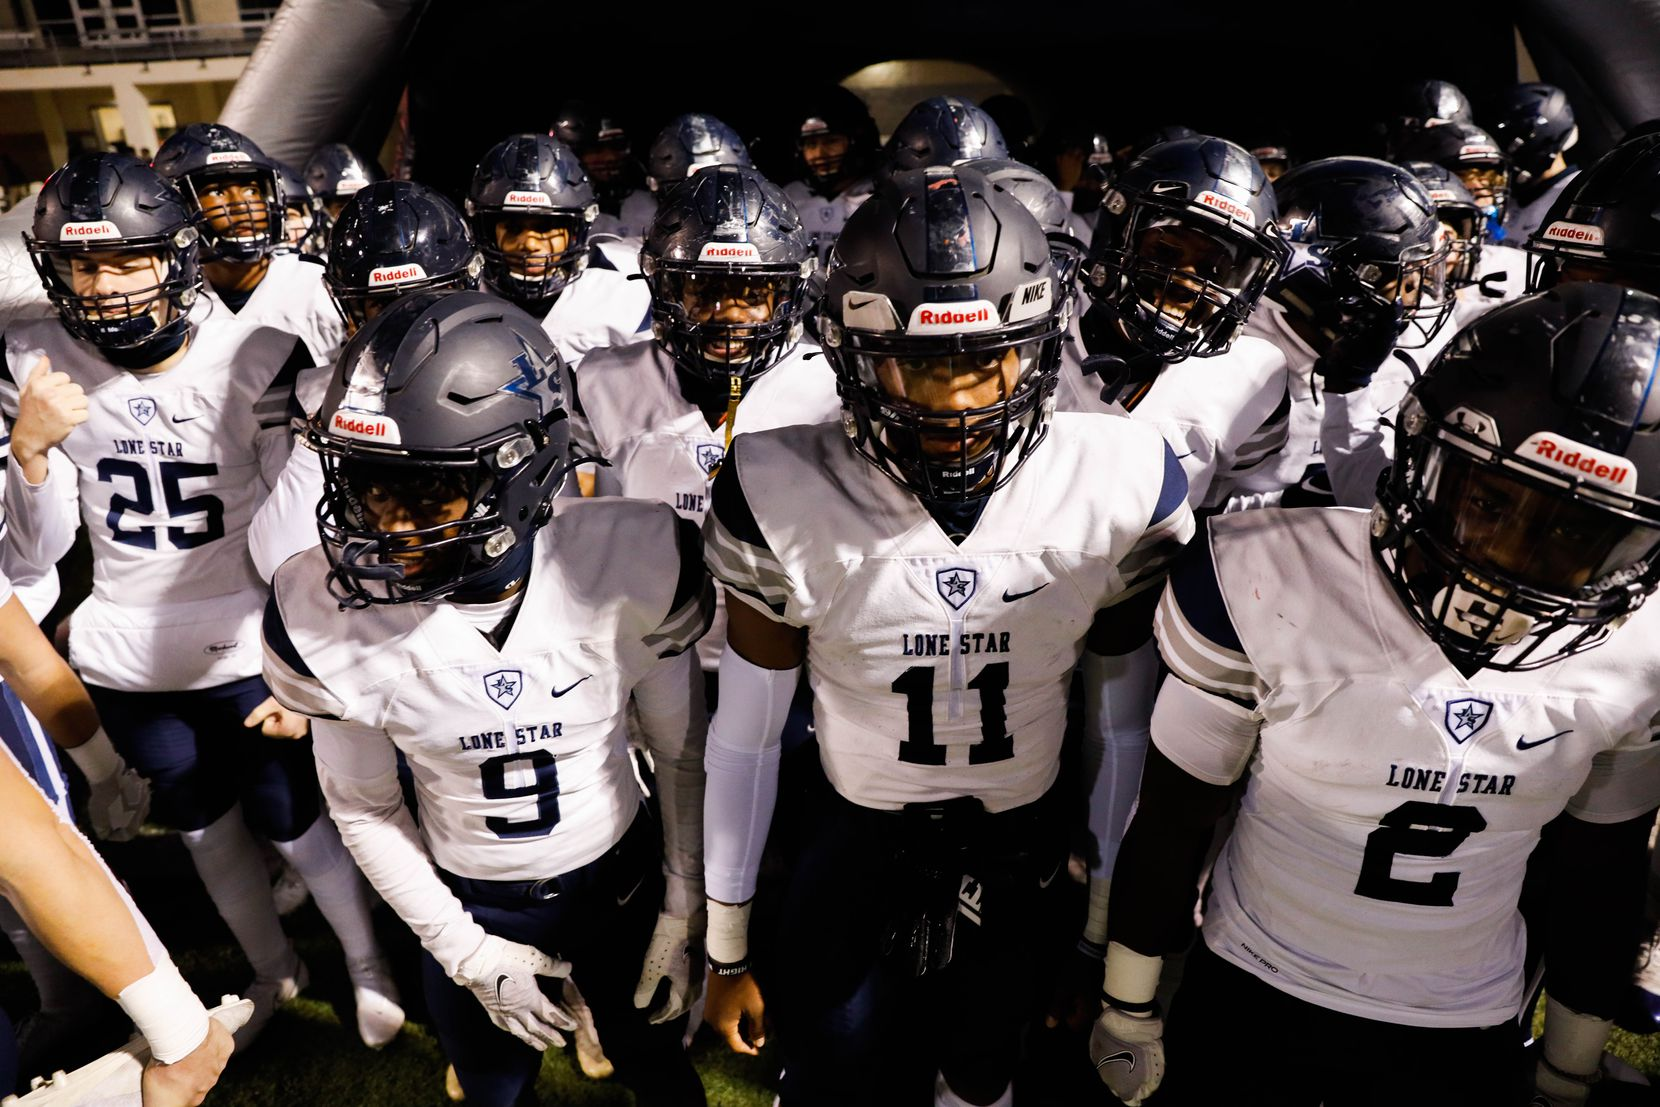 Frisco Lone Star players get ready before the start of a football game against Denton Ryan at the C.H. Collins Complex in Denton on Thursday, Dec. 4, 2020. The game is tied at halftime, 14-14. (Juan Figueroa/ The Dallas Morning News)